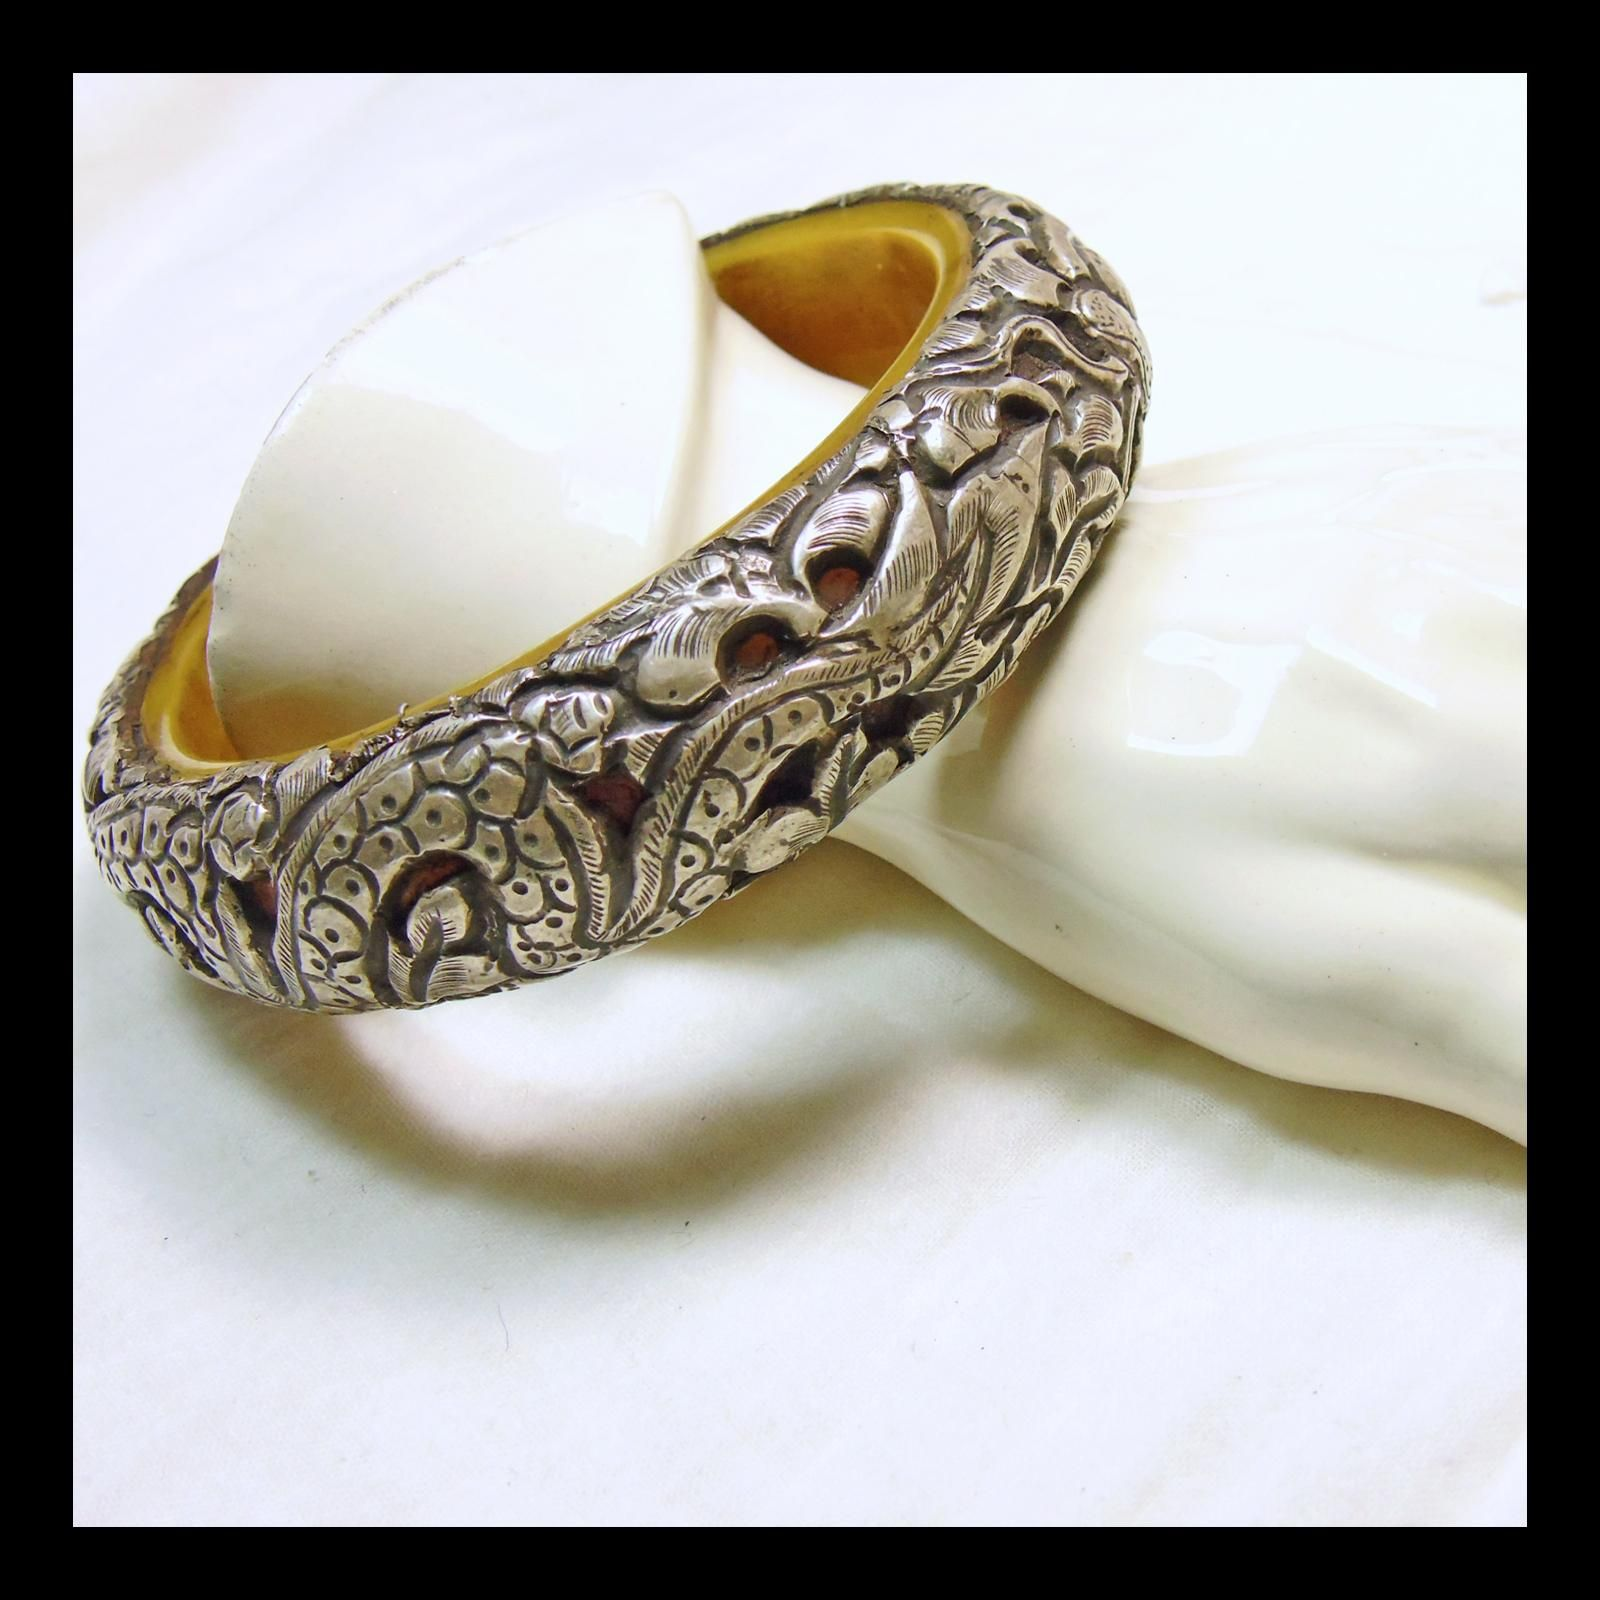 Tibetan Bone Bangle with 3 Dimensional Sterling Silver Overlay with Snake and Leaf Design - Tibetan Bone Bangle with 3 Dimensional Sterling Silver Overlay with Snake and Leaf Design